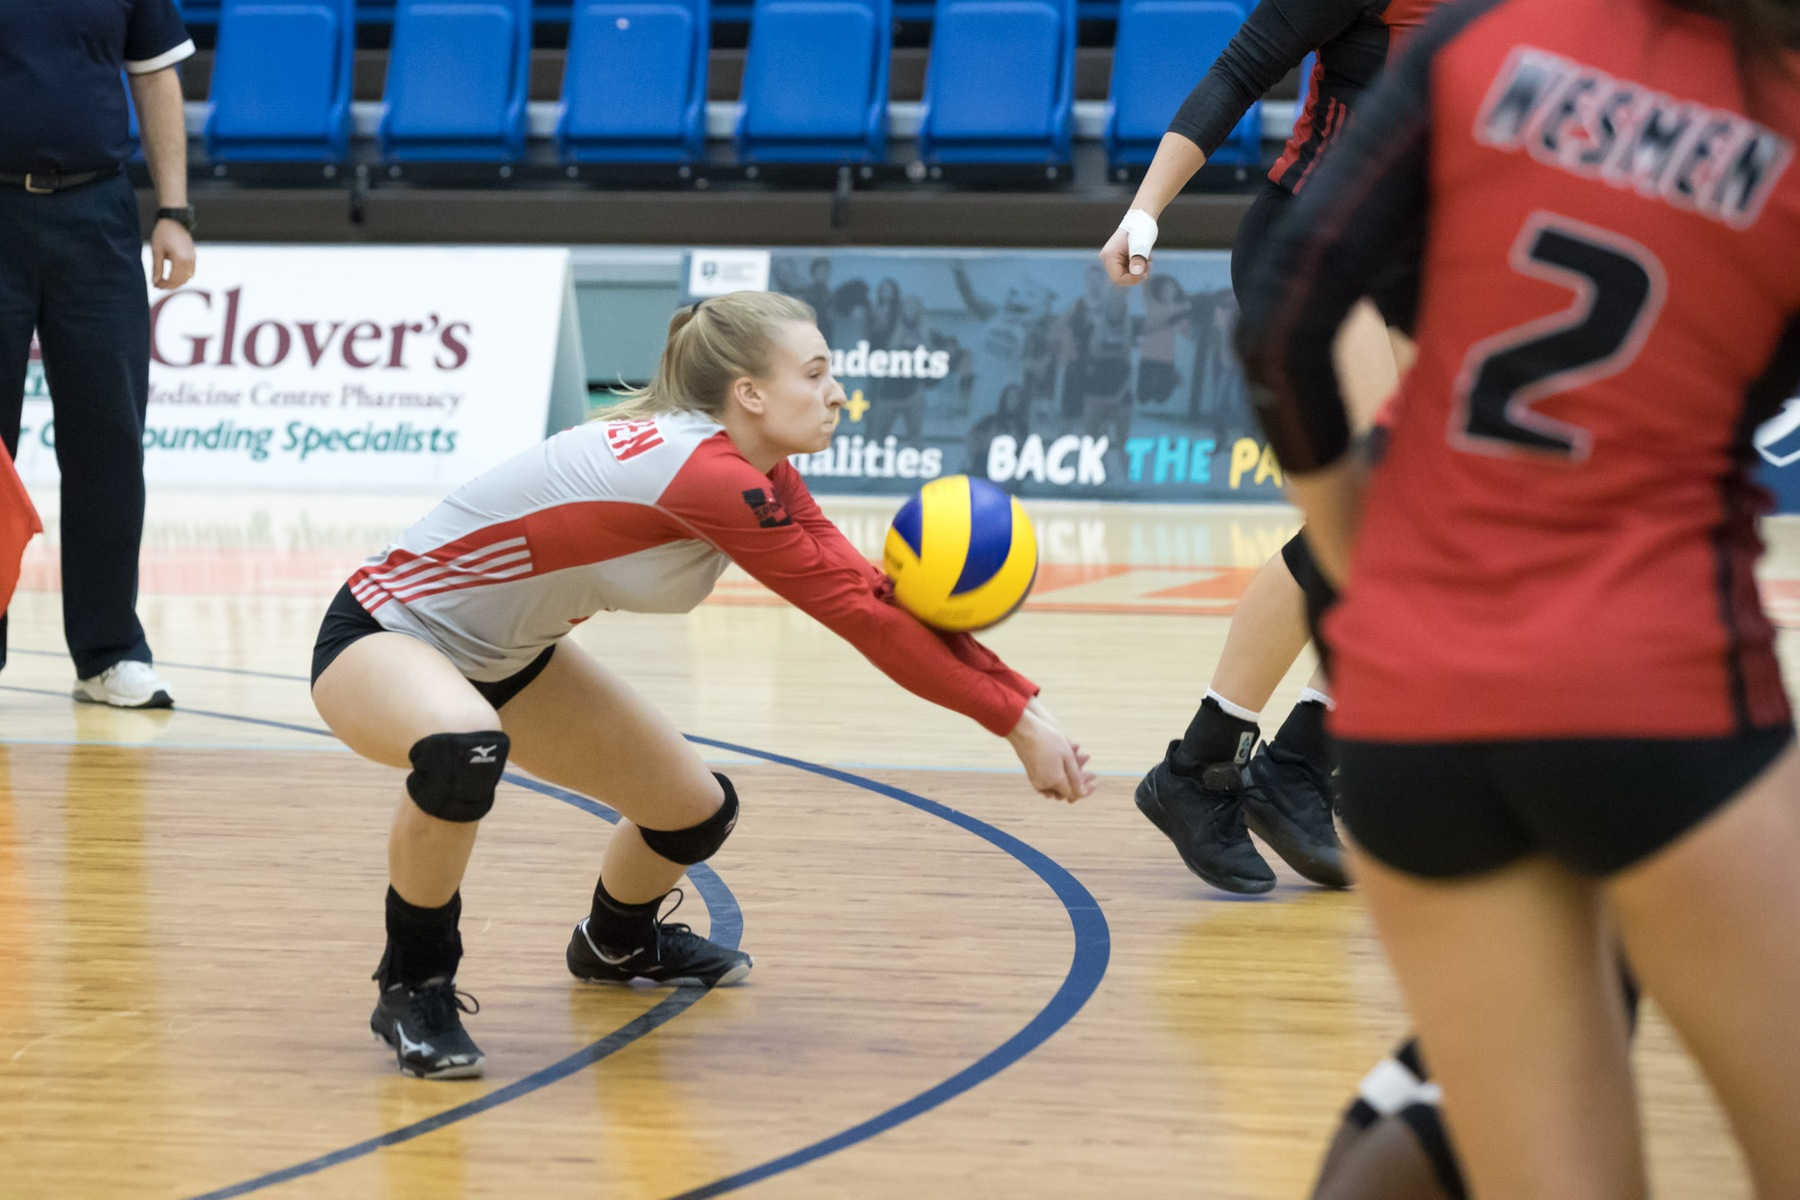 Winnipeg libero Jessica Andjelic receives serve during the Wesmen match against the Thompson Rivers Wolfpack, Saturday, Nov. 17, 2018 in Kamloops, B.C. (Andrew Snucins/TRU Athletics)